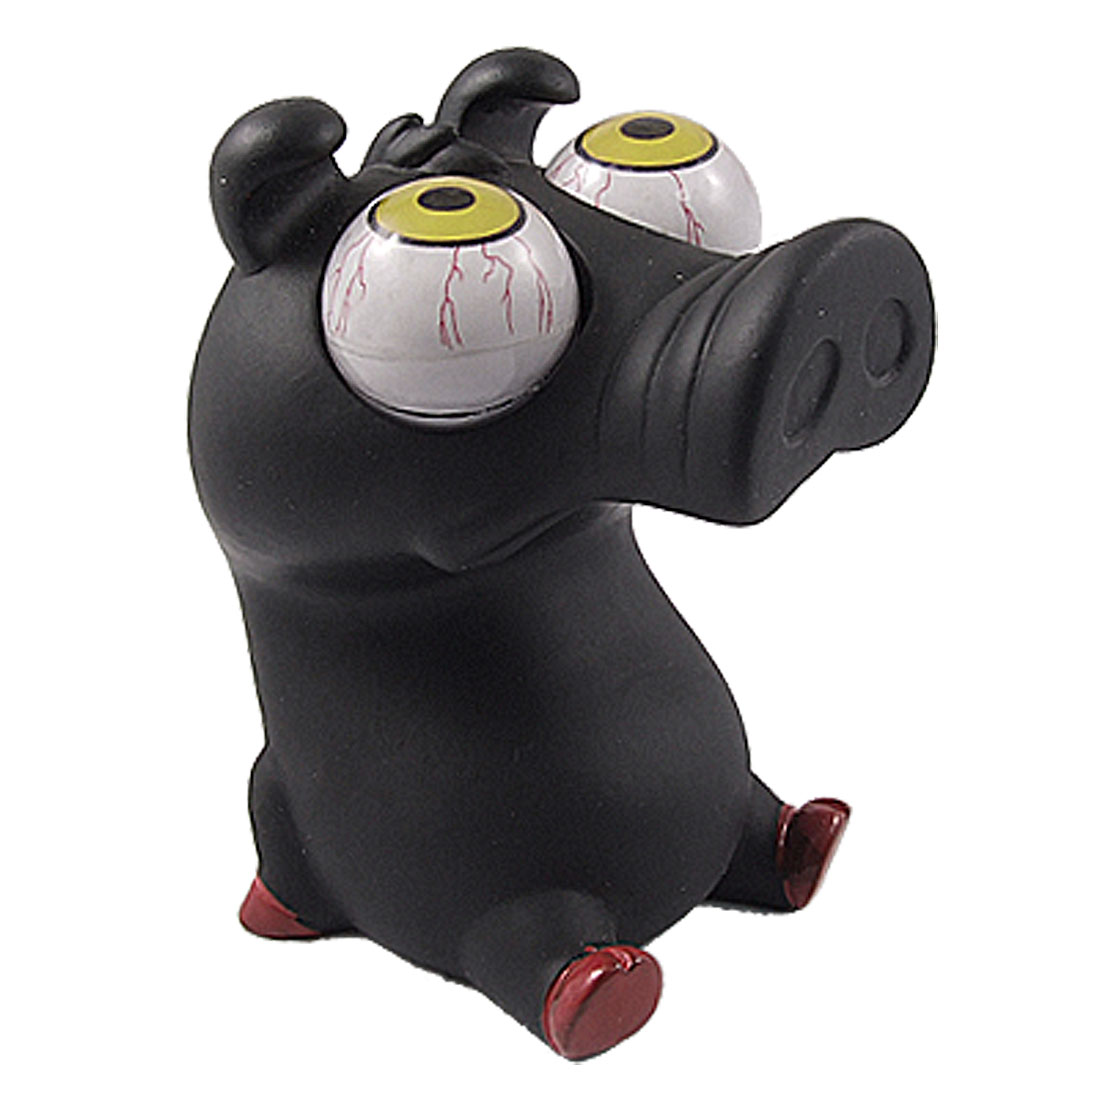 Big Pop Eyes Black Squeezing Emotion Release Rubber Pig Toy